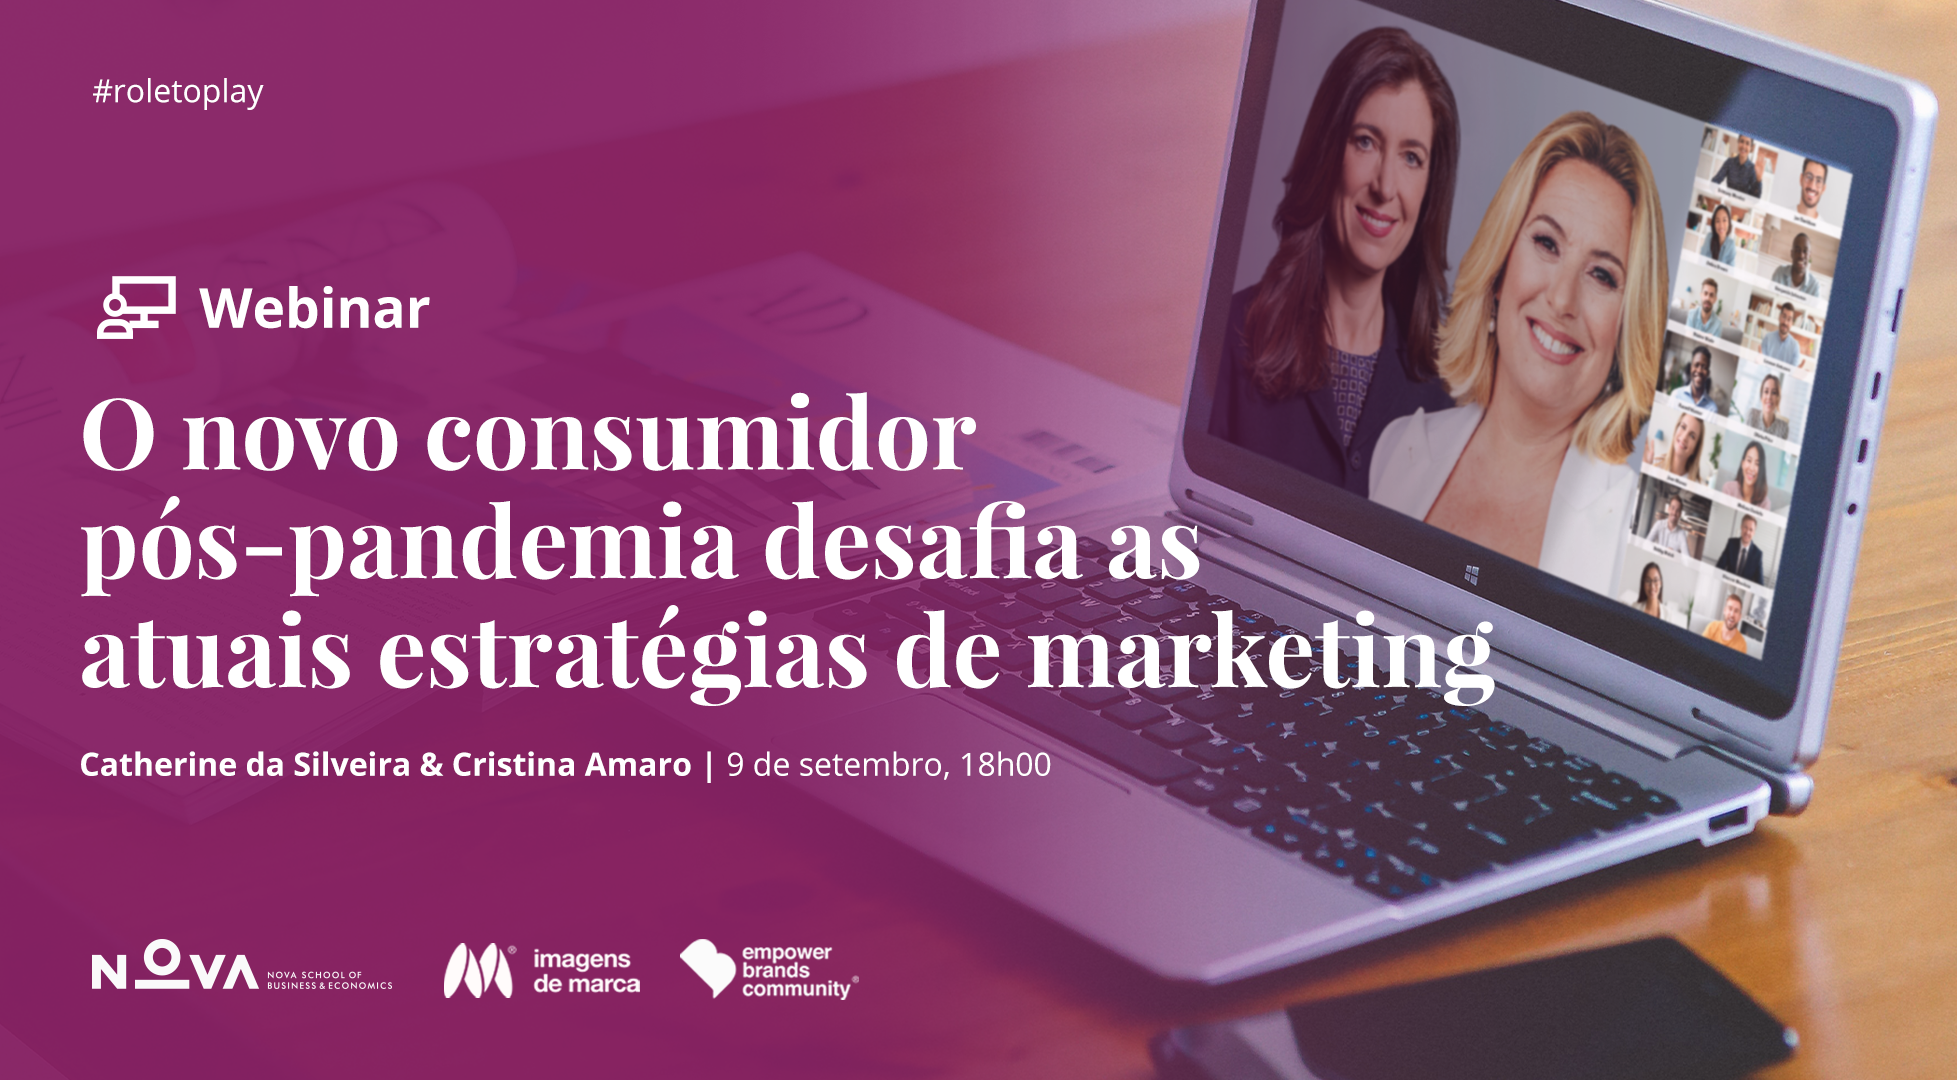 O novo consumidor pós-pandemia desafia as atuais estratégias de marketing